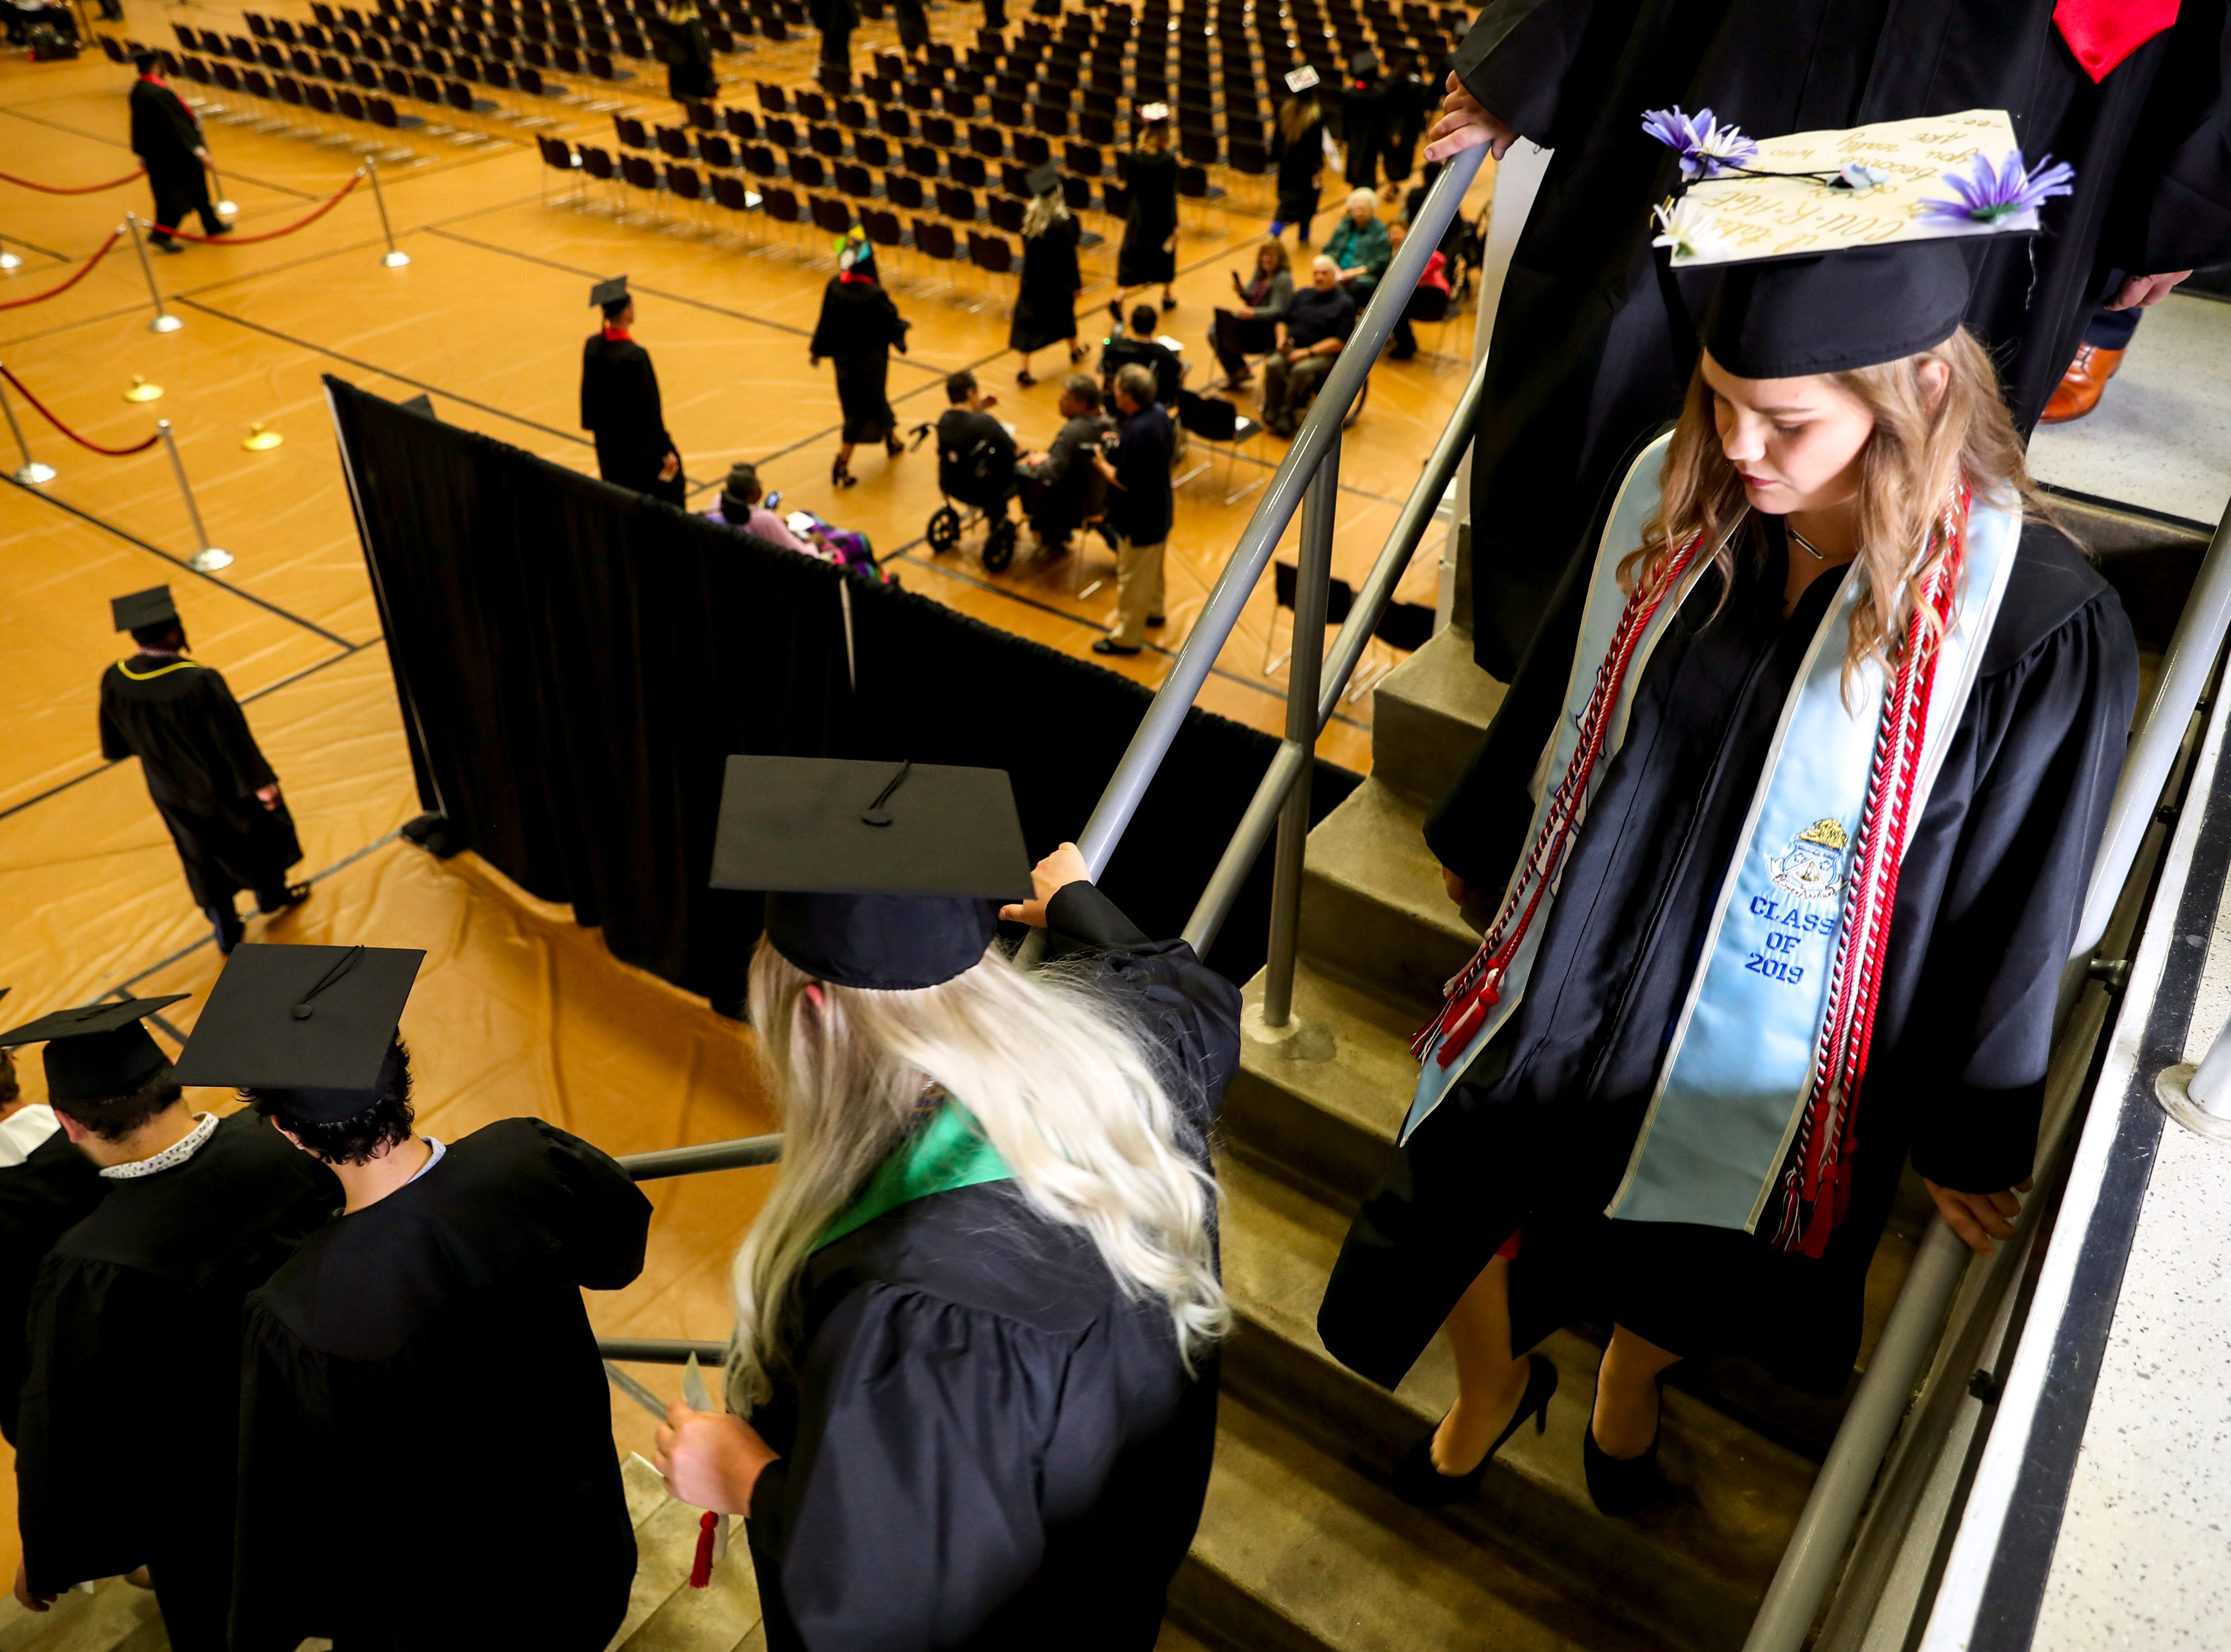 Graduating students walk down flanking staircases to head to their seats at the Austin Peay spring commencement ceremony 2019 for College of Business and College of STEM at Winfield Dunn Center in Clarksville, Tenn., on Friday, May 3, 2019.